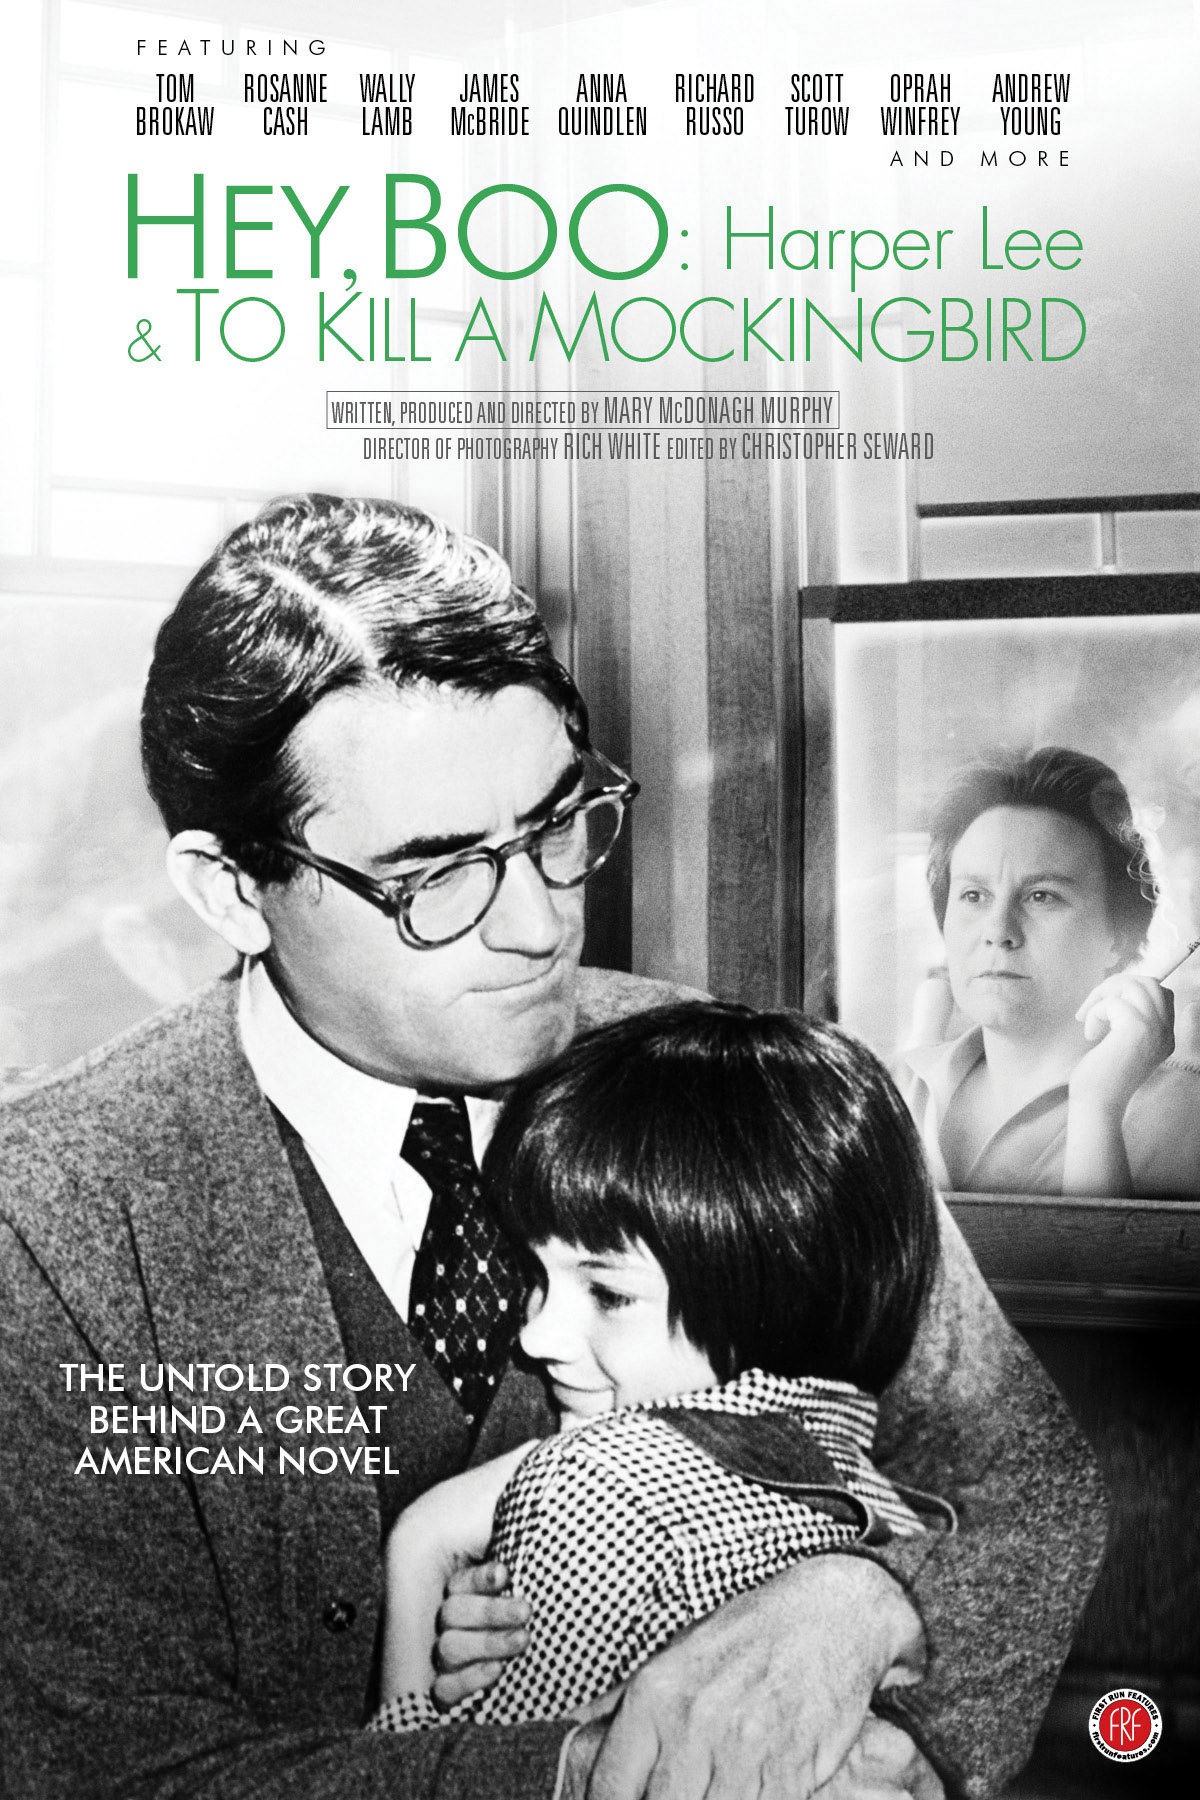 hey boo harper lee and to kill a mockingbird 225 heyboo jpg hey boo harper lee and to kill a mockingbird